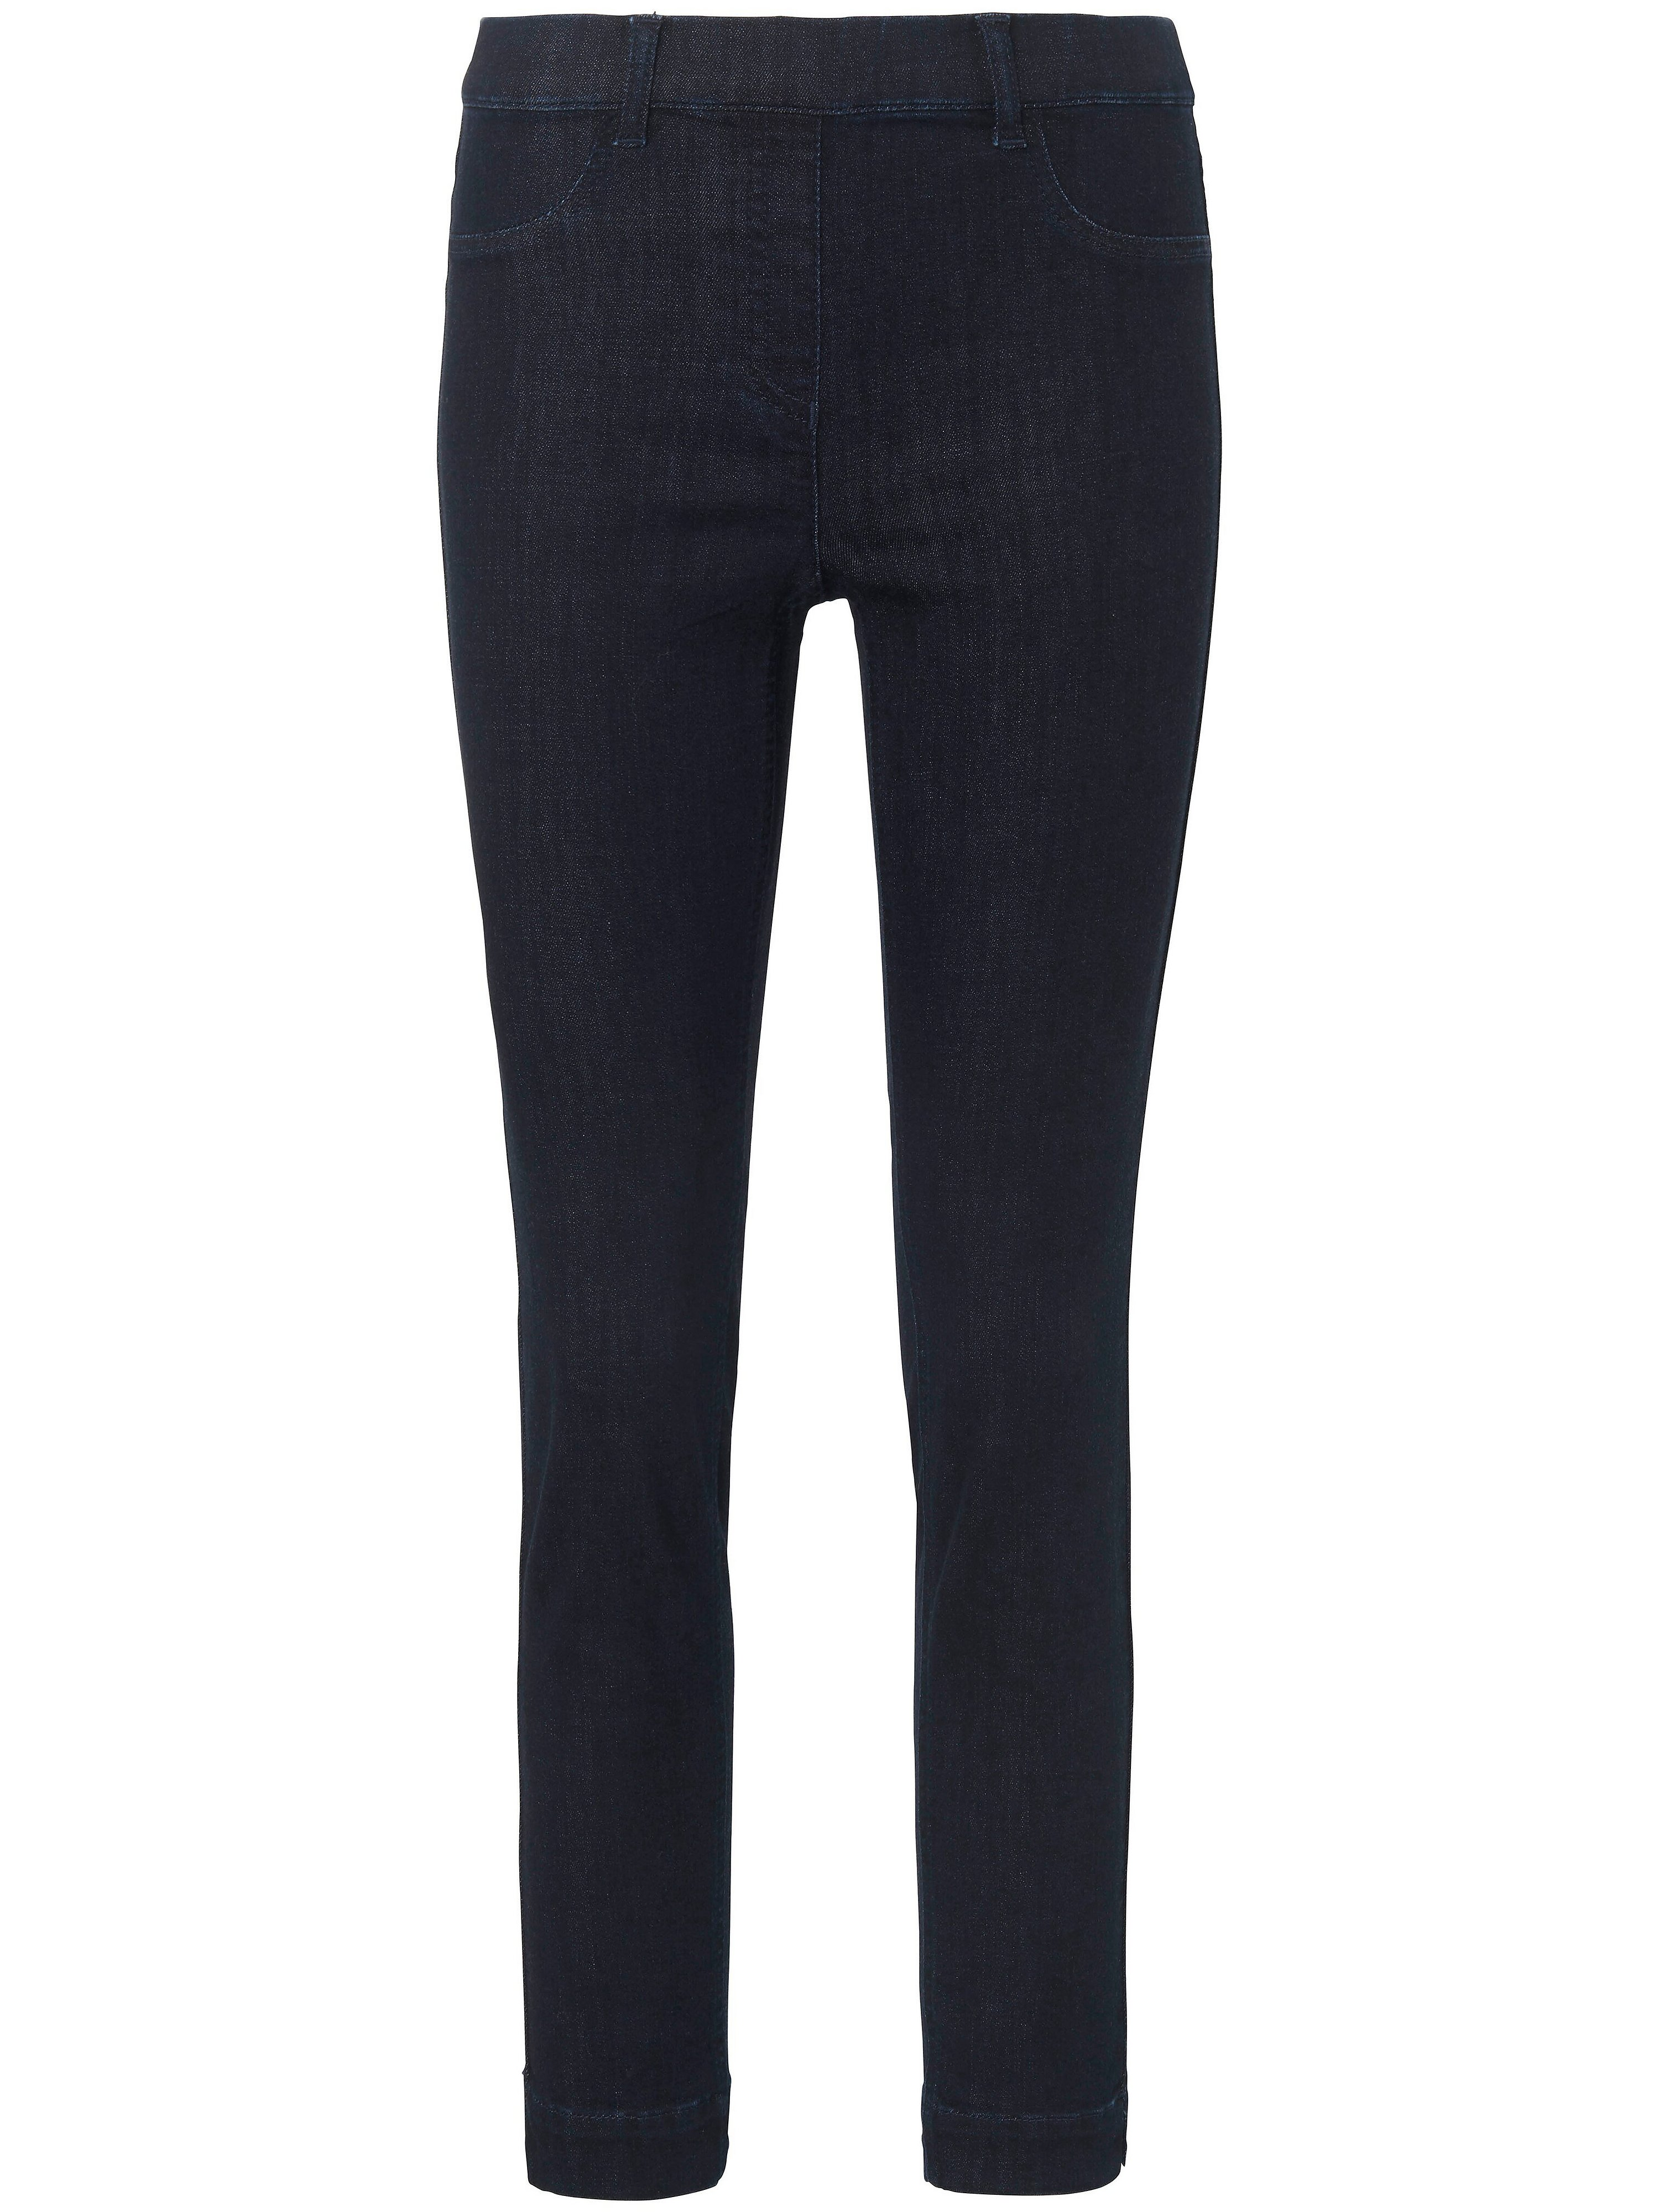 Ankle-length pull-on jeans Sylvia fit Peter Hahn denim